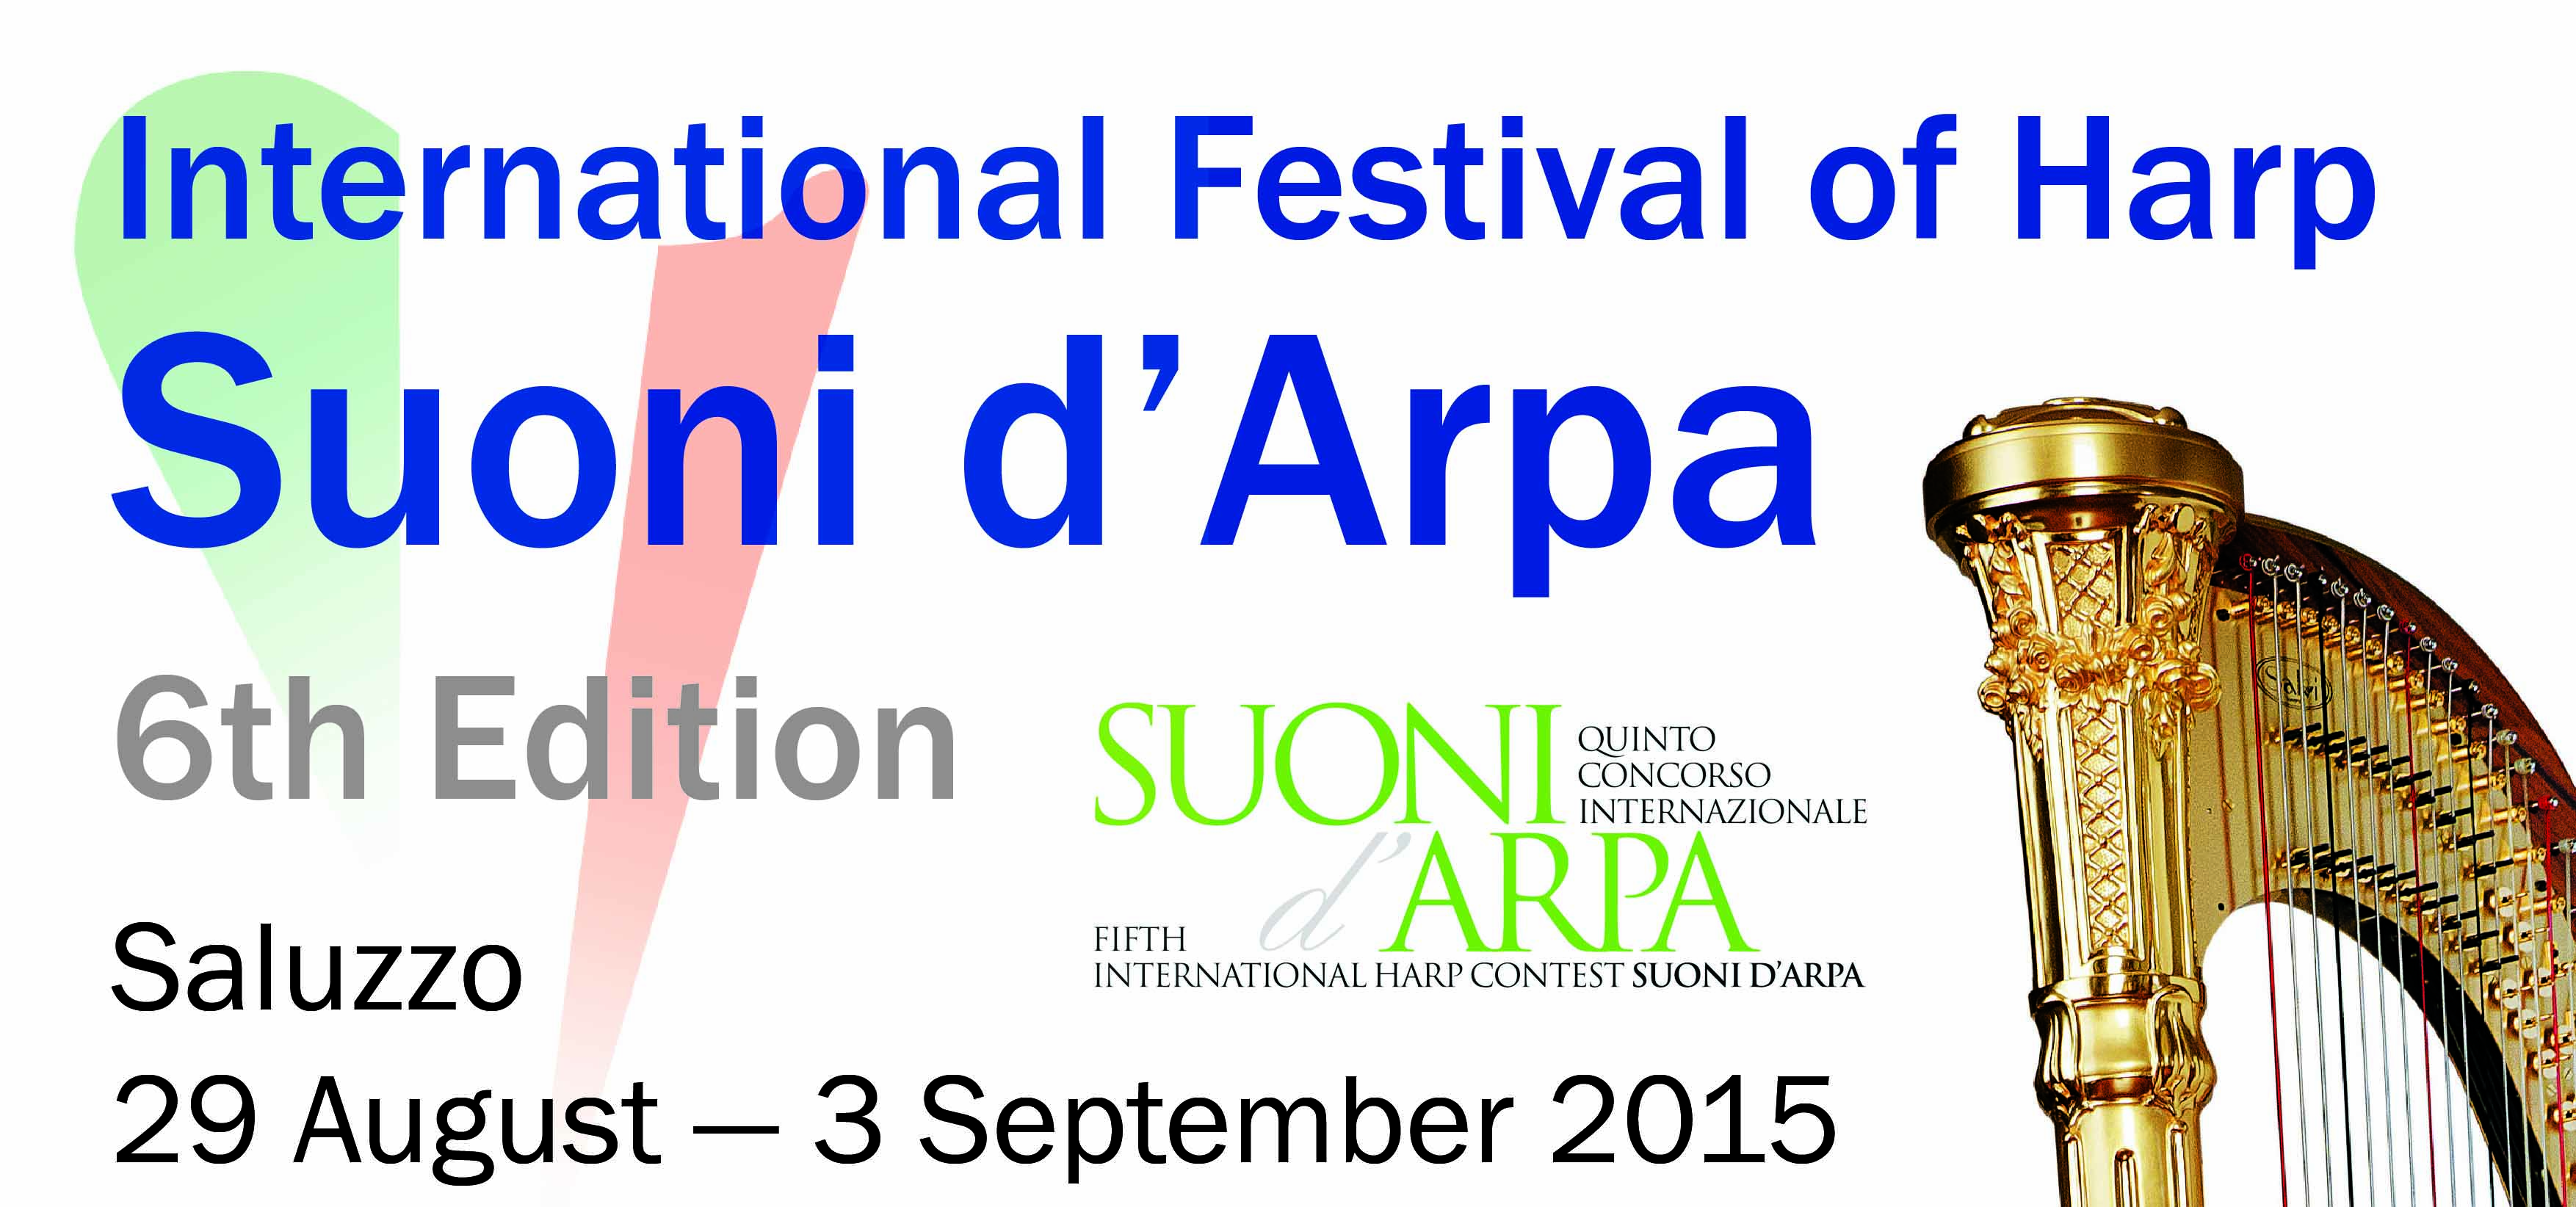 International Festival of Harp